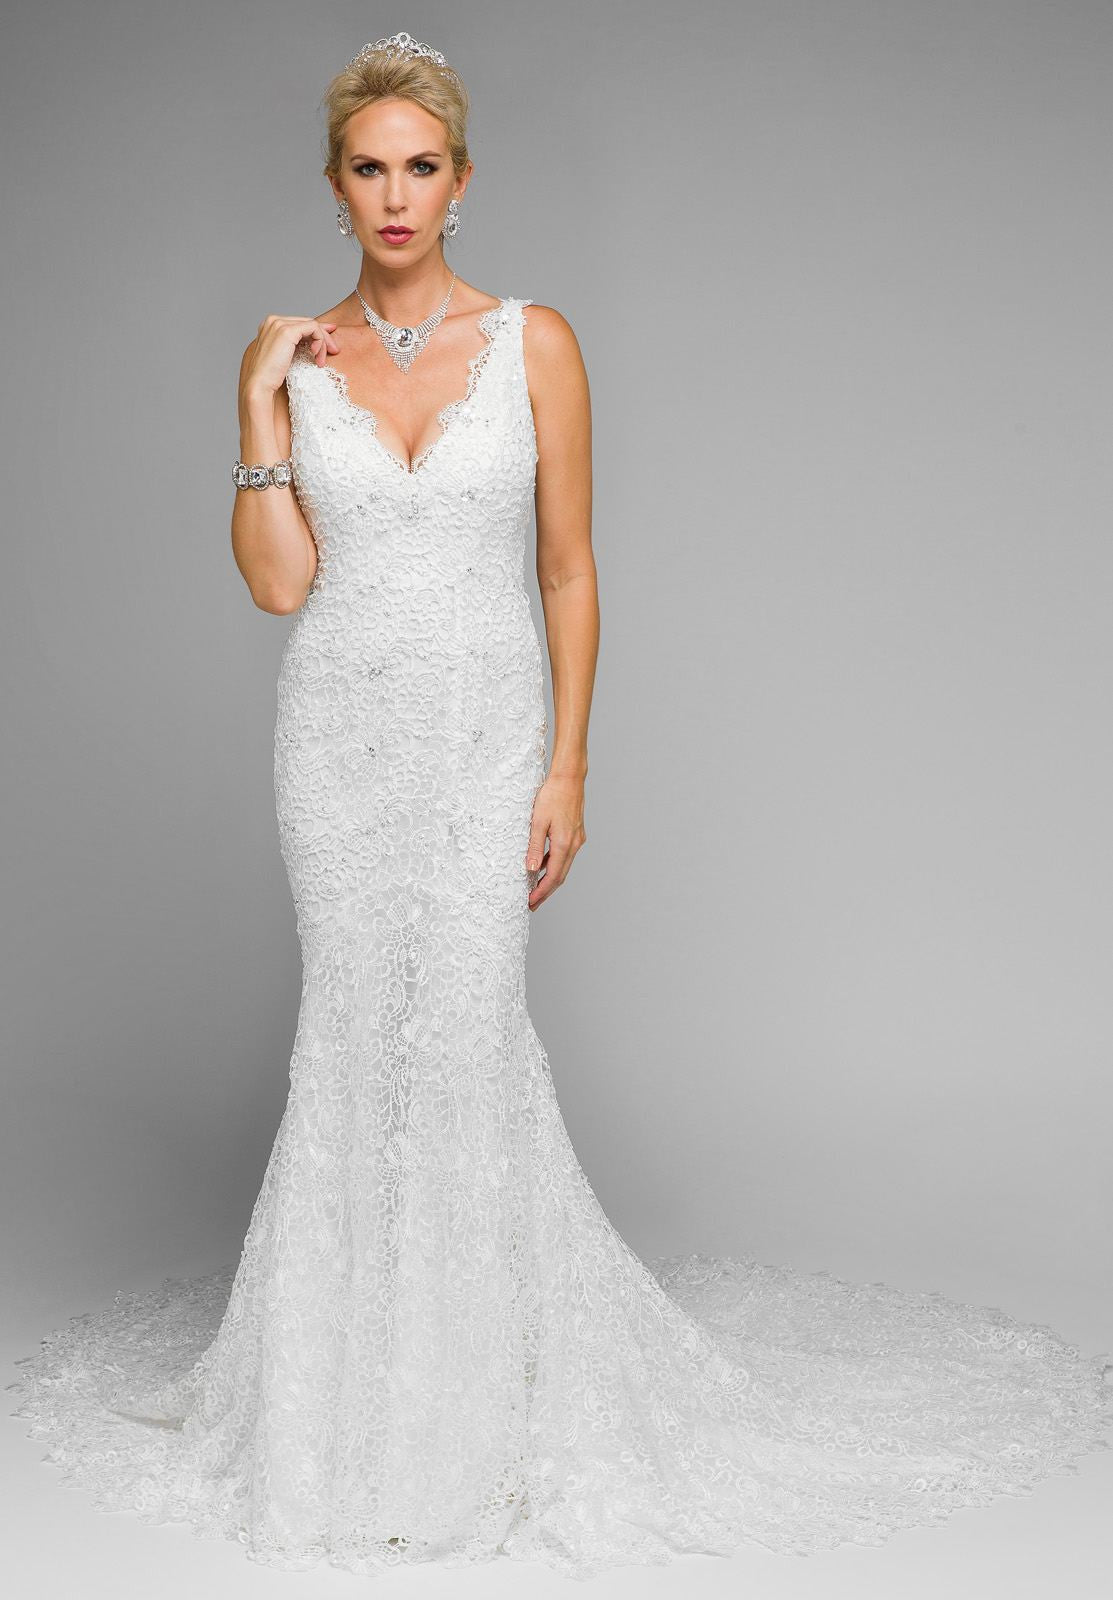 Mermaid Style Wedding Dress.Juliet 341 Plunging Neck Fitted Mermaid Style Lace Wedding Dress